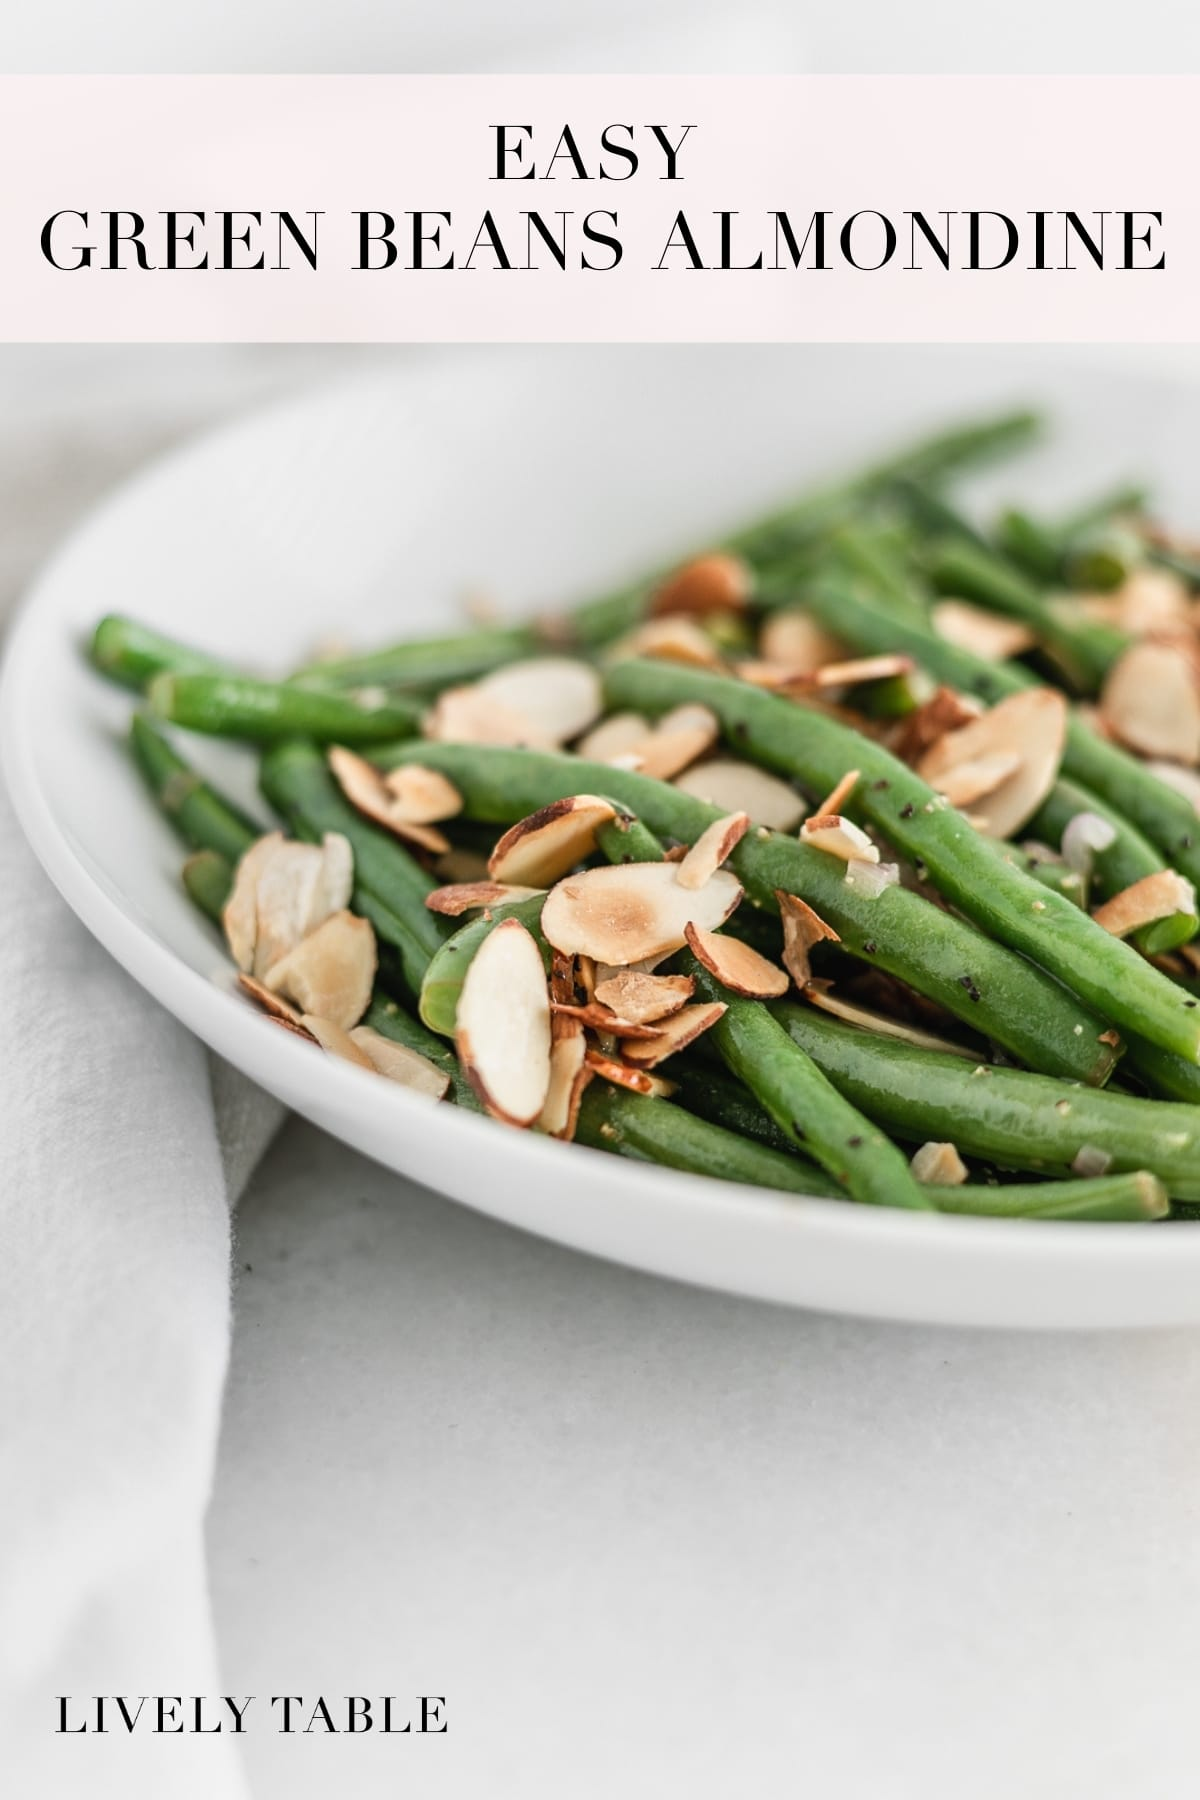 Flavorful Green Beans Almondine is a healthy and delicious side dish for Thanksgiving or for any meal of the year! (gluten-free, vegan option)